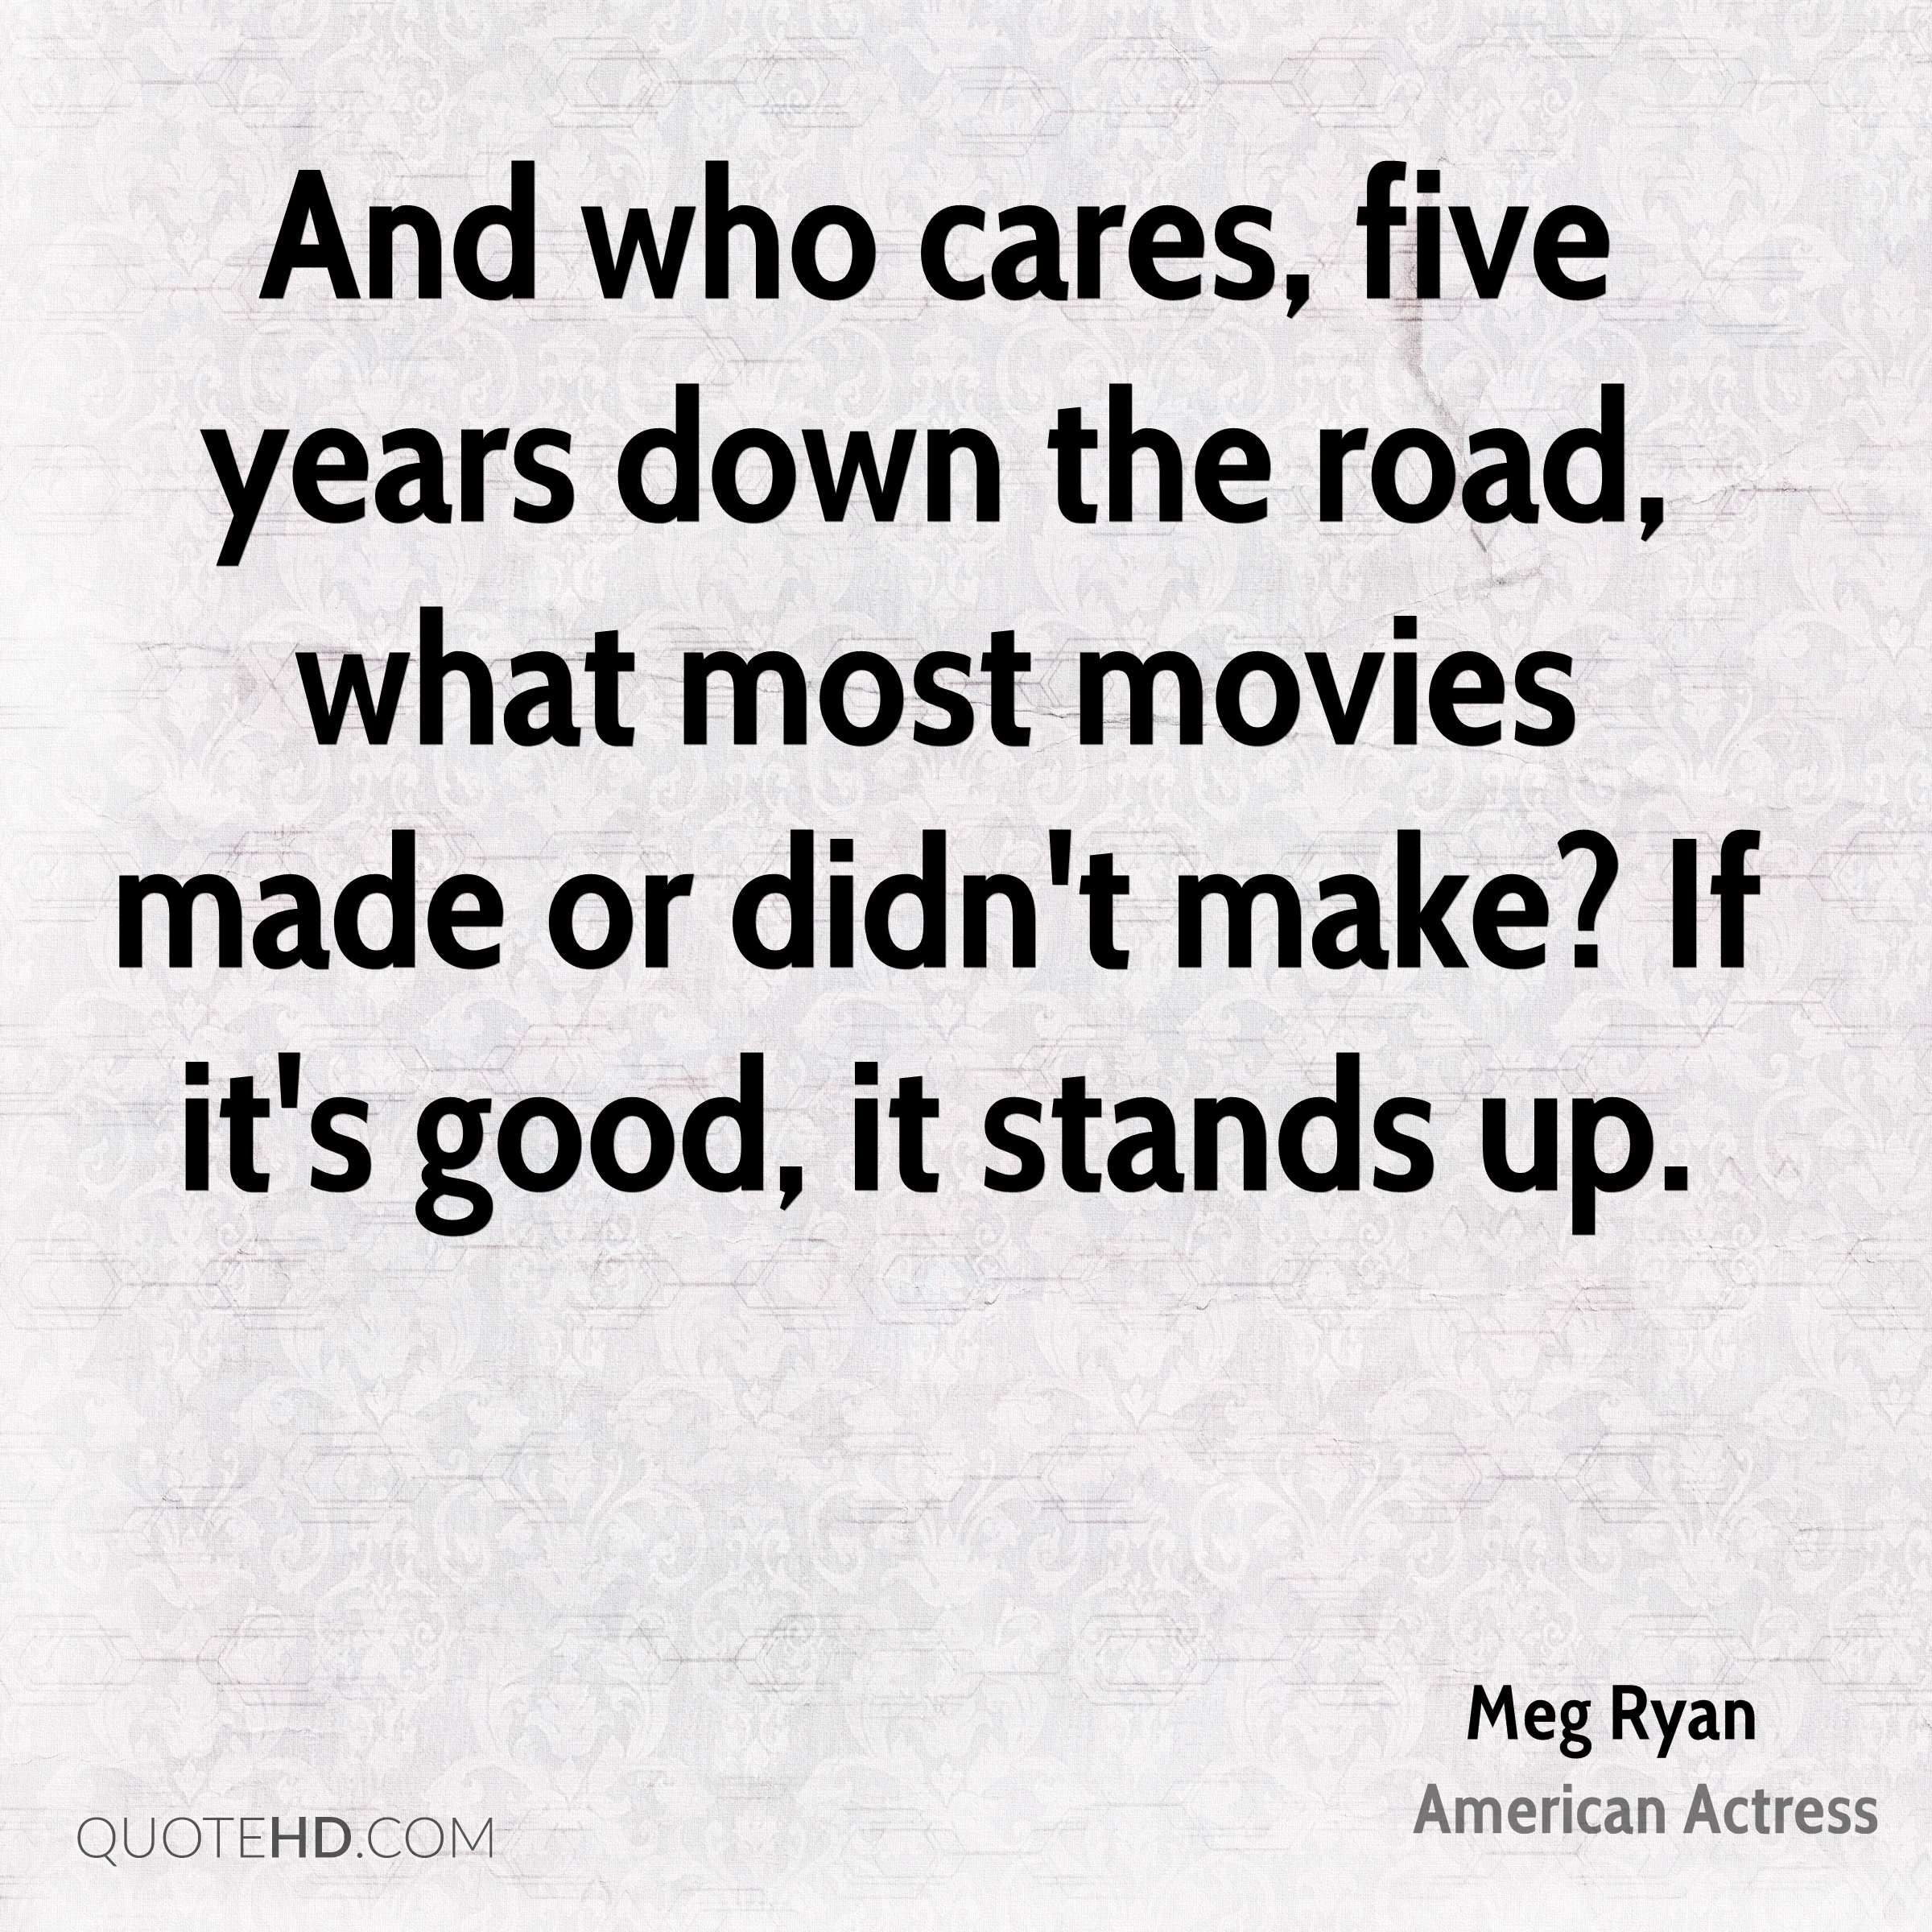 And who cares, five years down the road, what most movies made or didn't make? If it's good, it stands up.